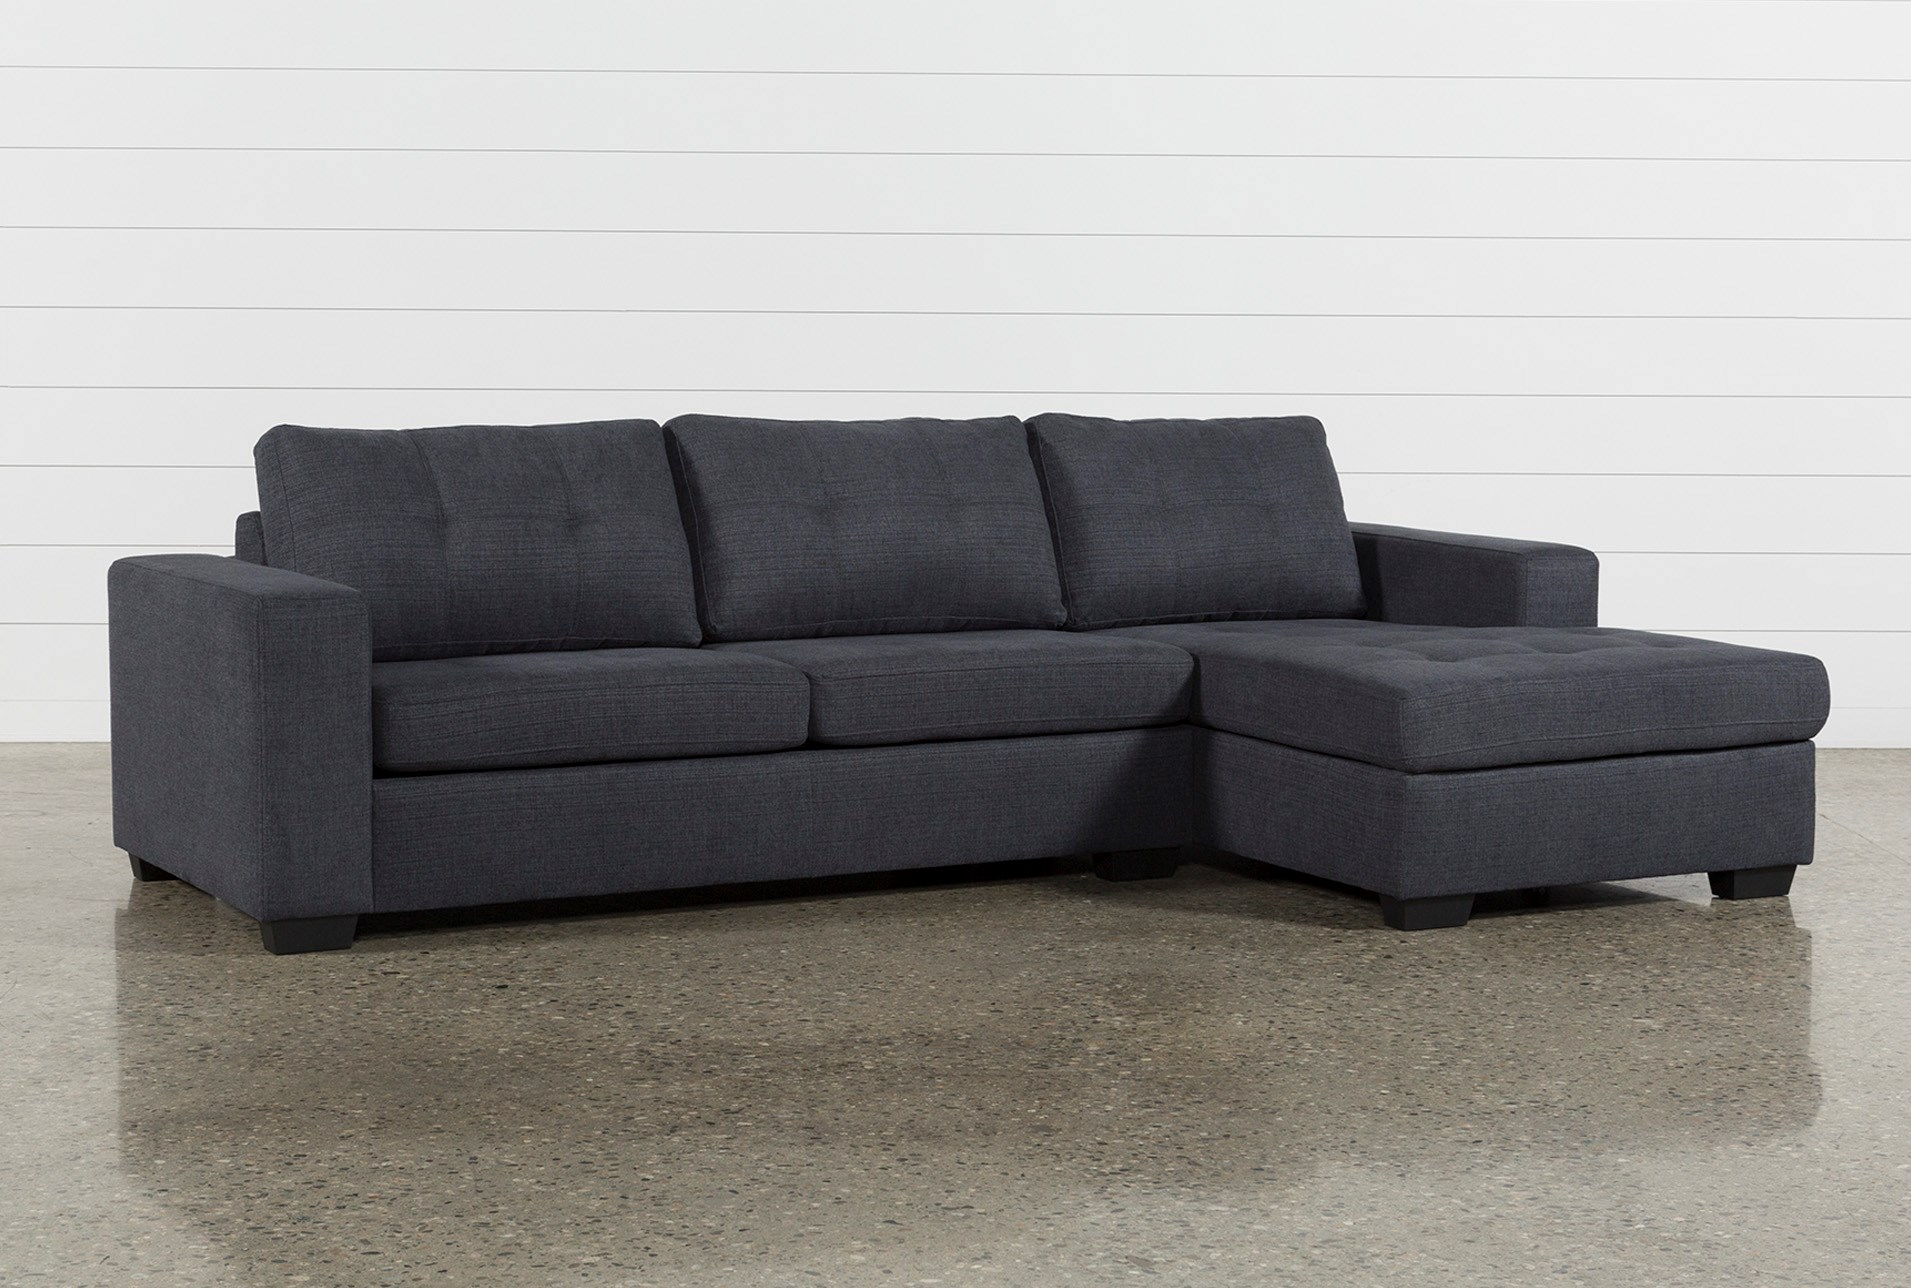 separation shoes 85175 bb7e3 Remington Charcoal 2 Piece Sleeper Sectional With Right Arm Facing Storage  Chaise